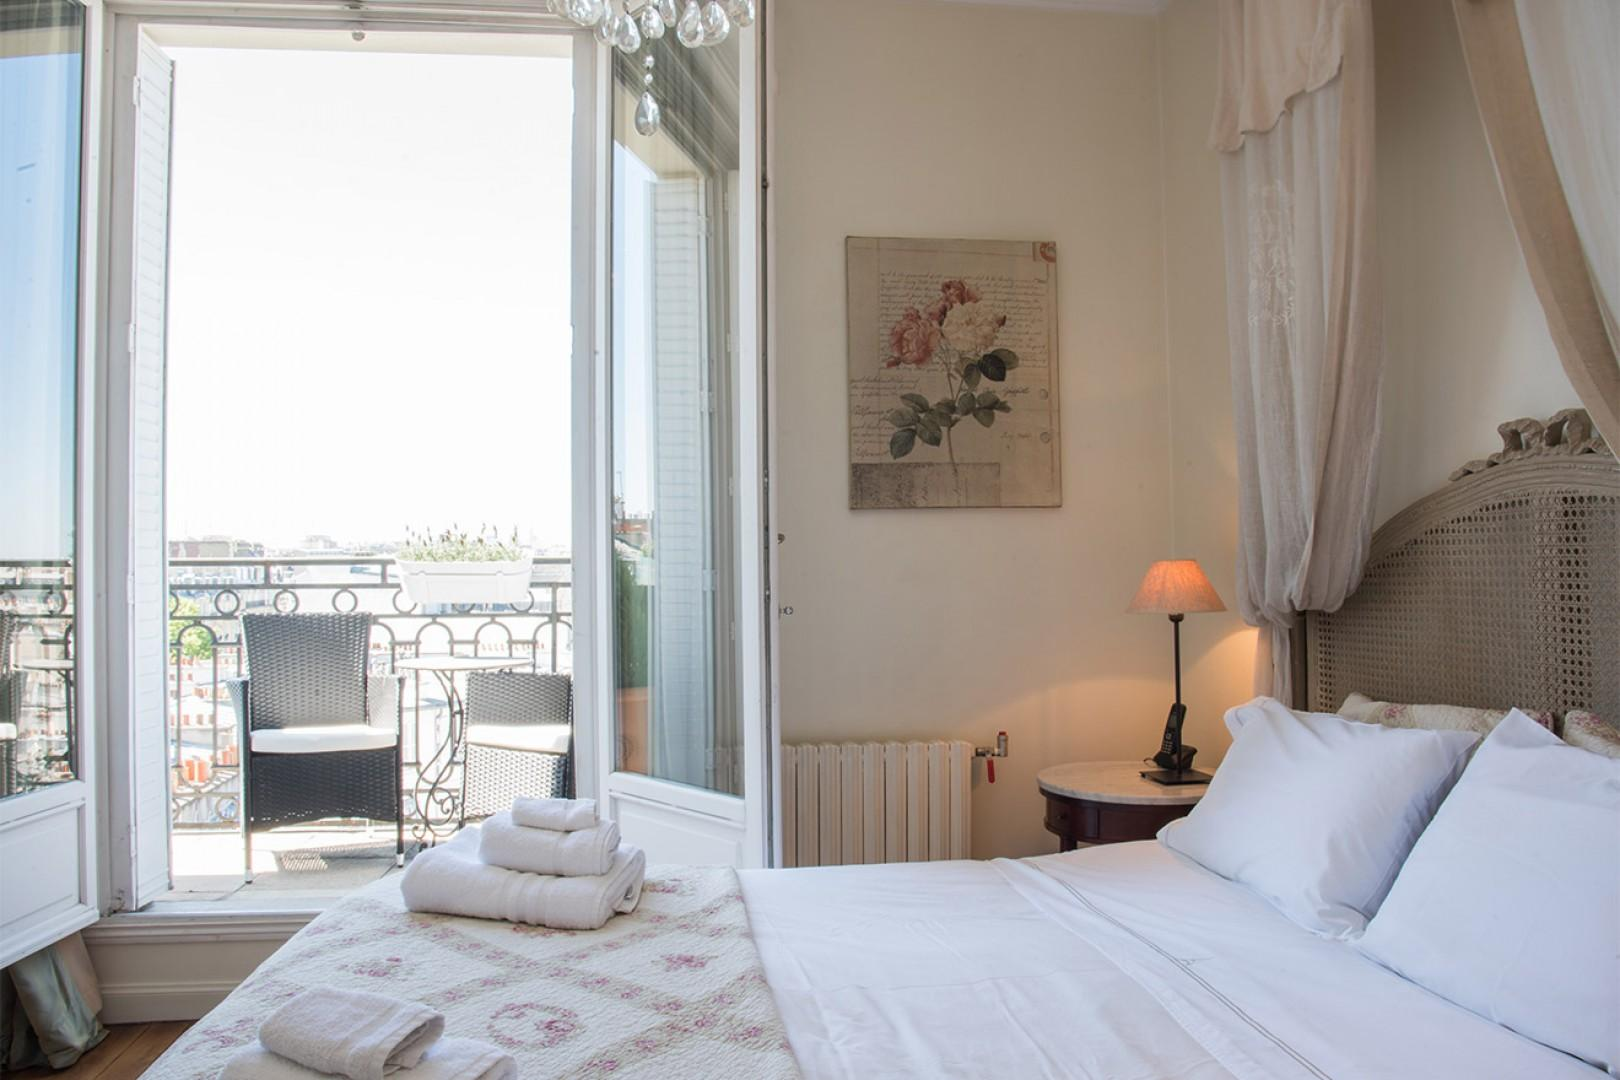 The large French windows let in lots of natural light.